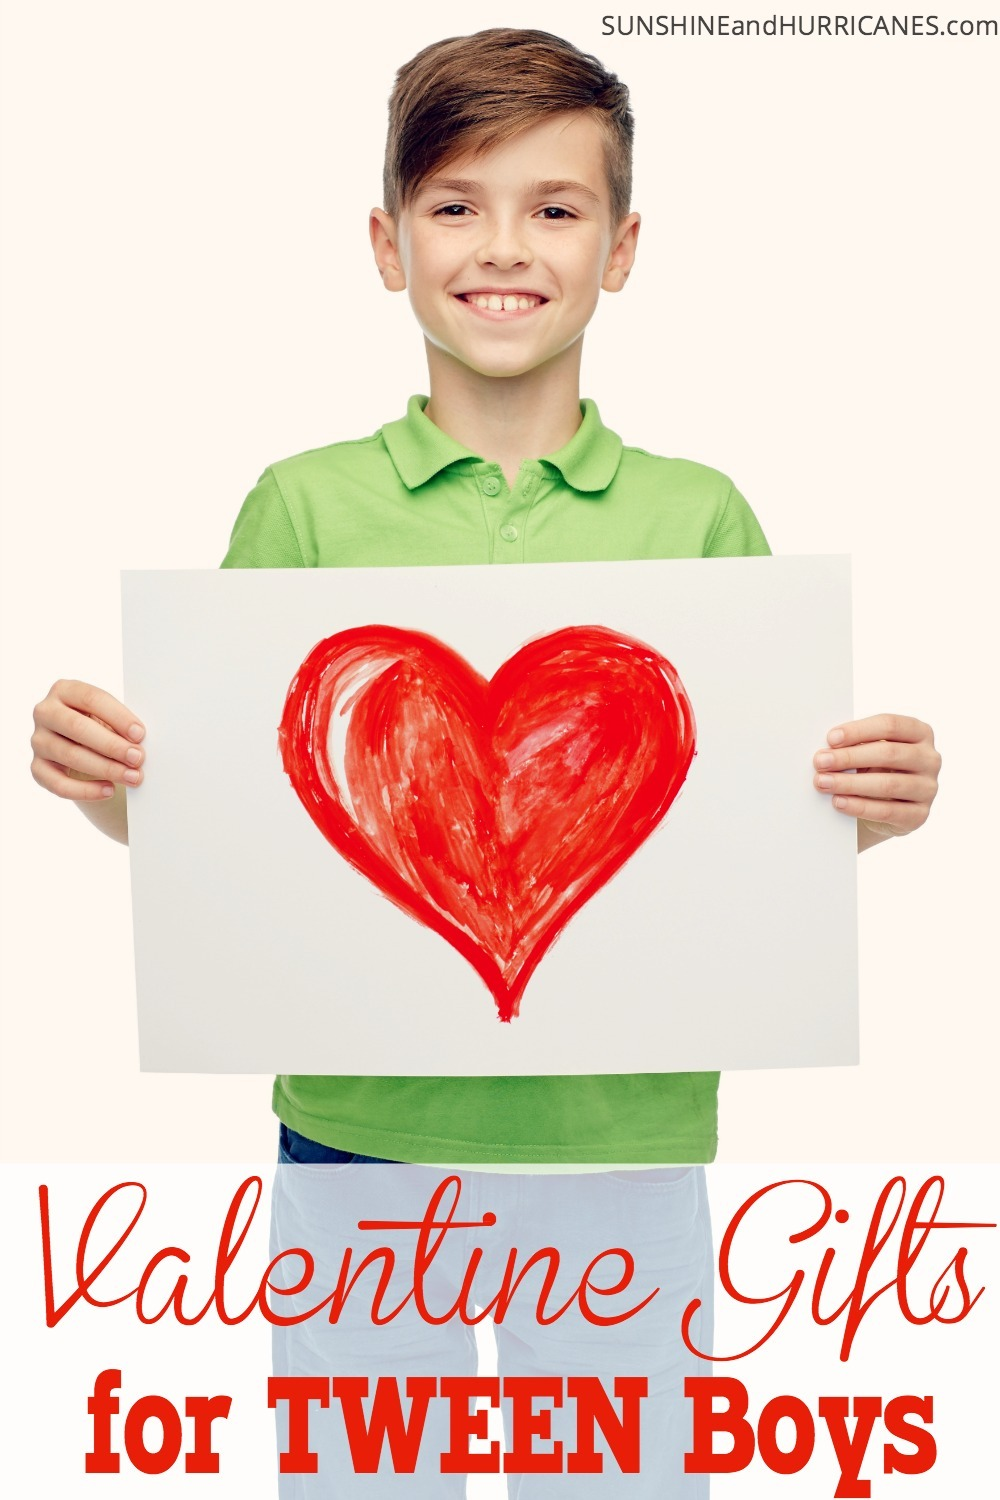 The days of matchbox cars and legos won his heart are fading, but you can still get a glimpse of that little boy smile with these small tokens of affection this Valentine's Day. Valentine Gifts for Tween Boys. SunshineandHurricanes.com